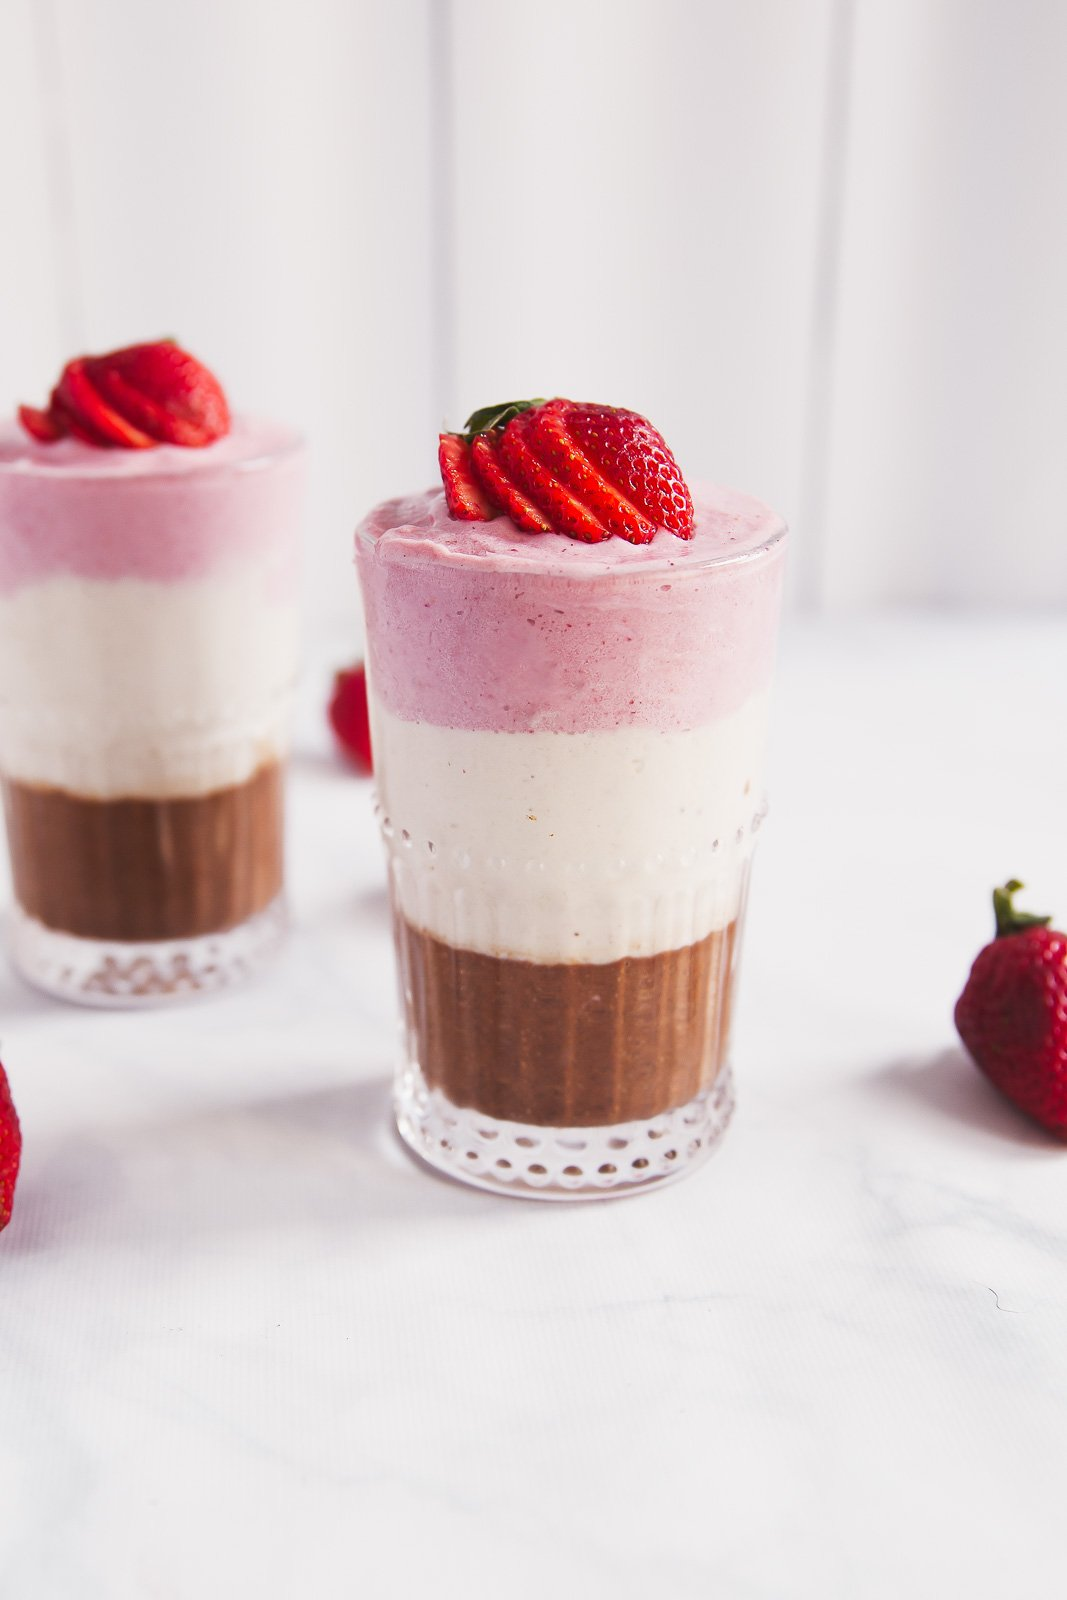 Banana Split Protein Smoothie that tastes like ice cream! So good topped with coconut whipped cream or peanut butter.